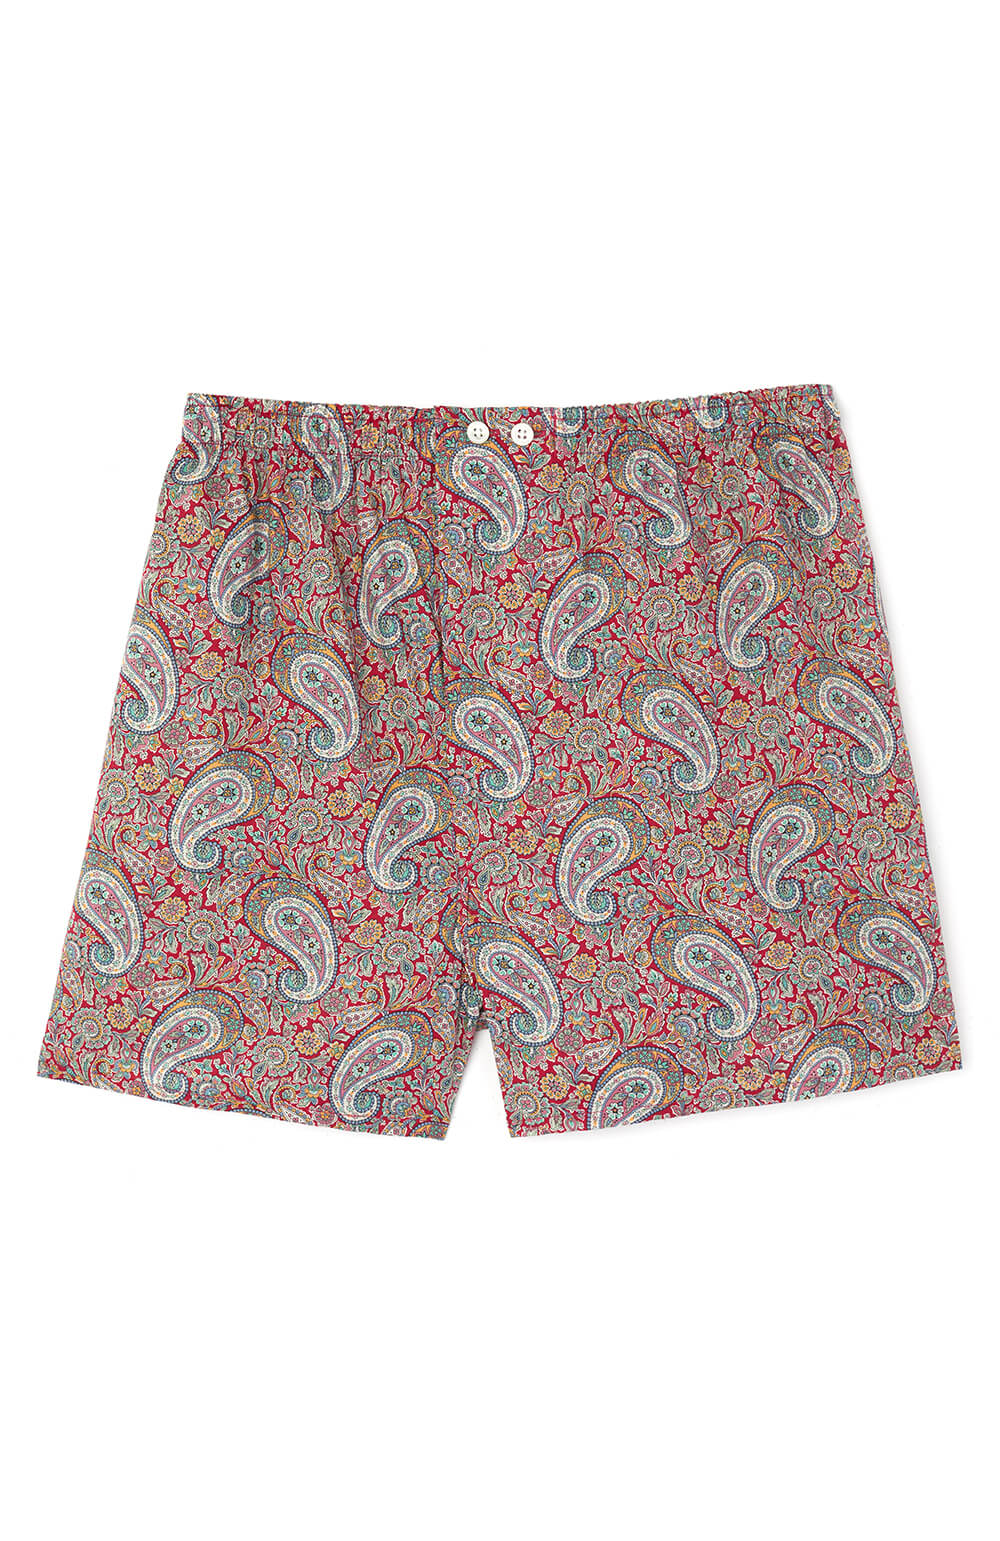 Liberty Boxer Shorts (lmbb) - Felix Red